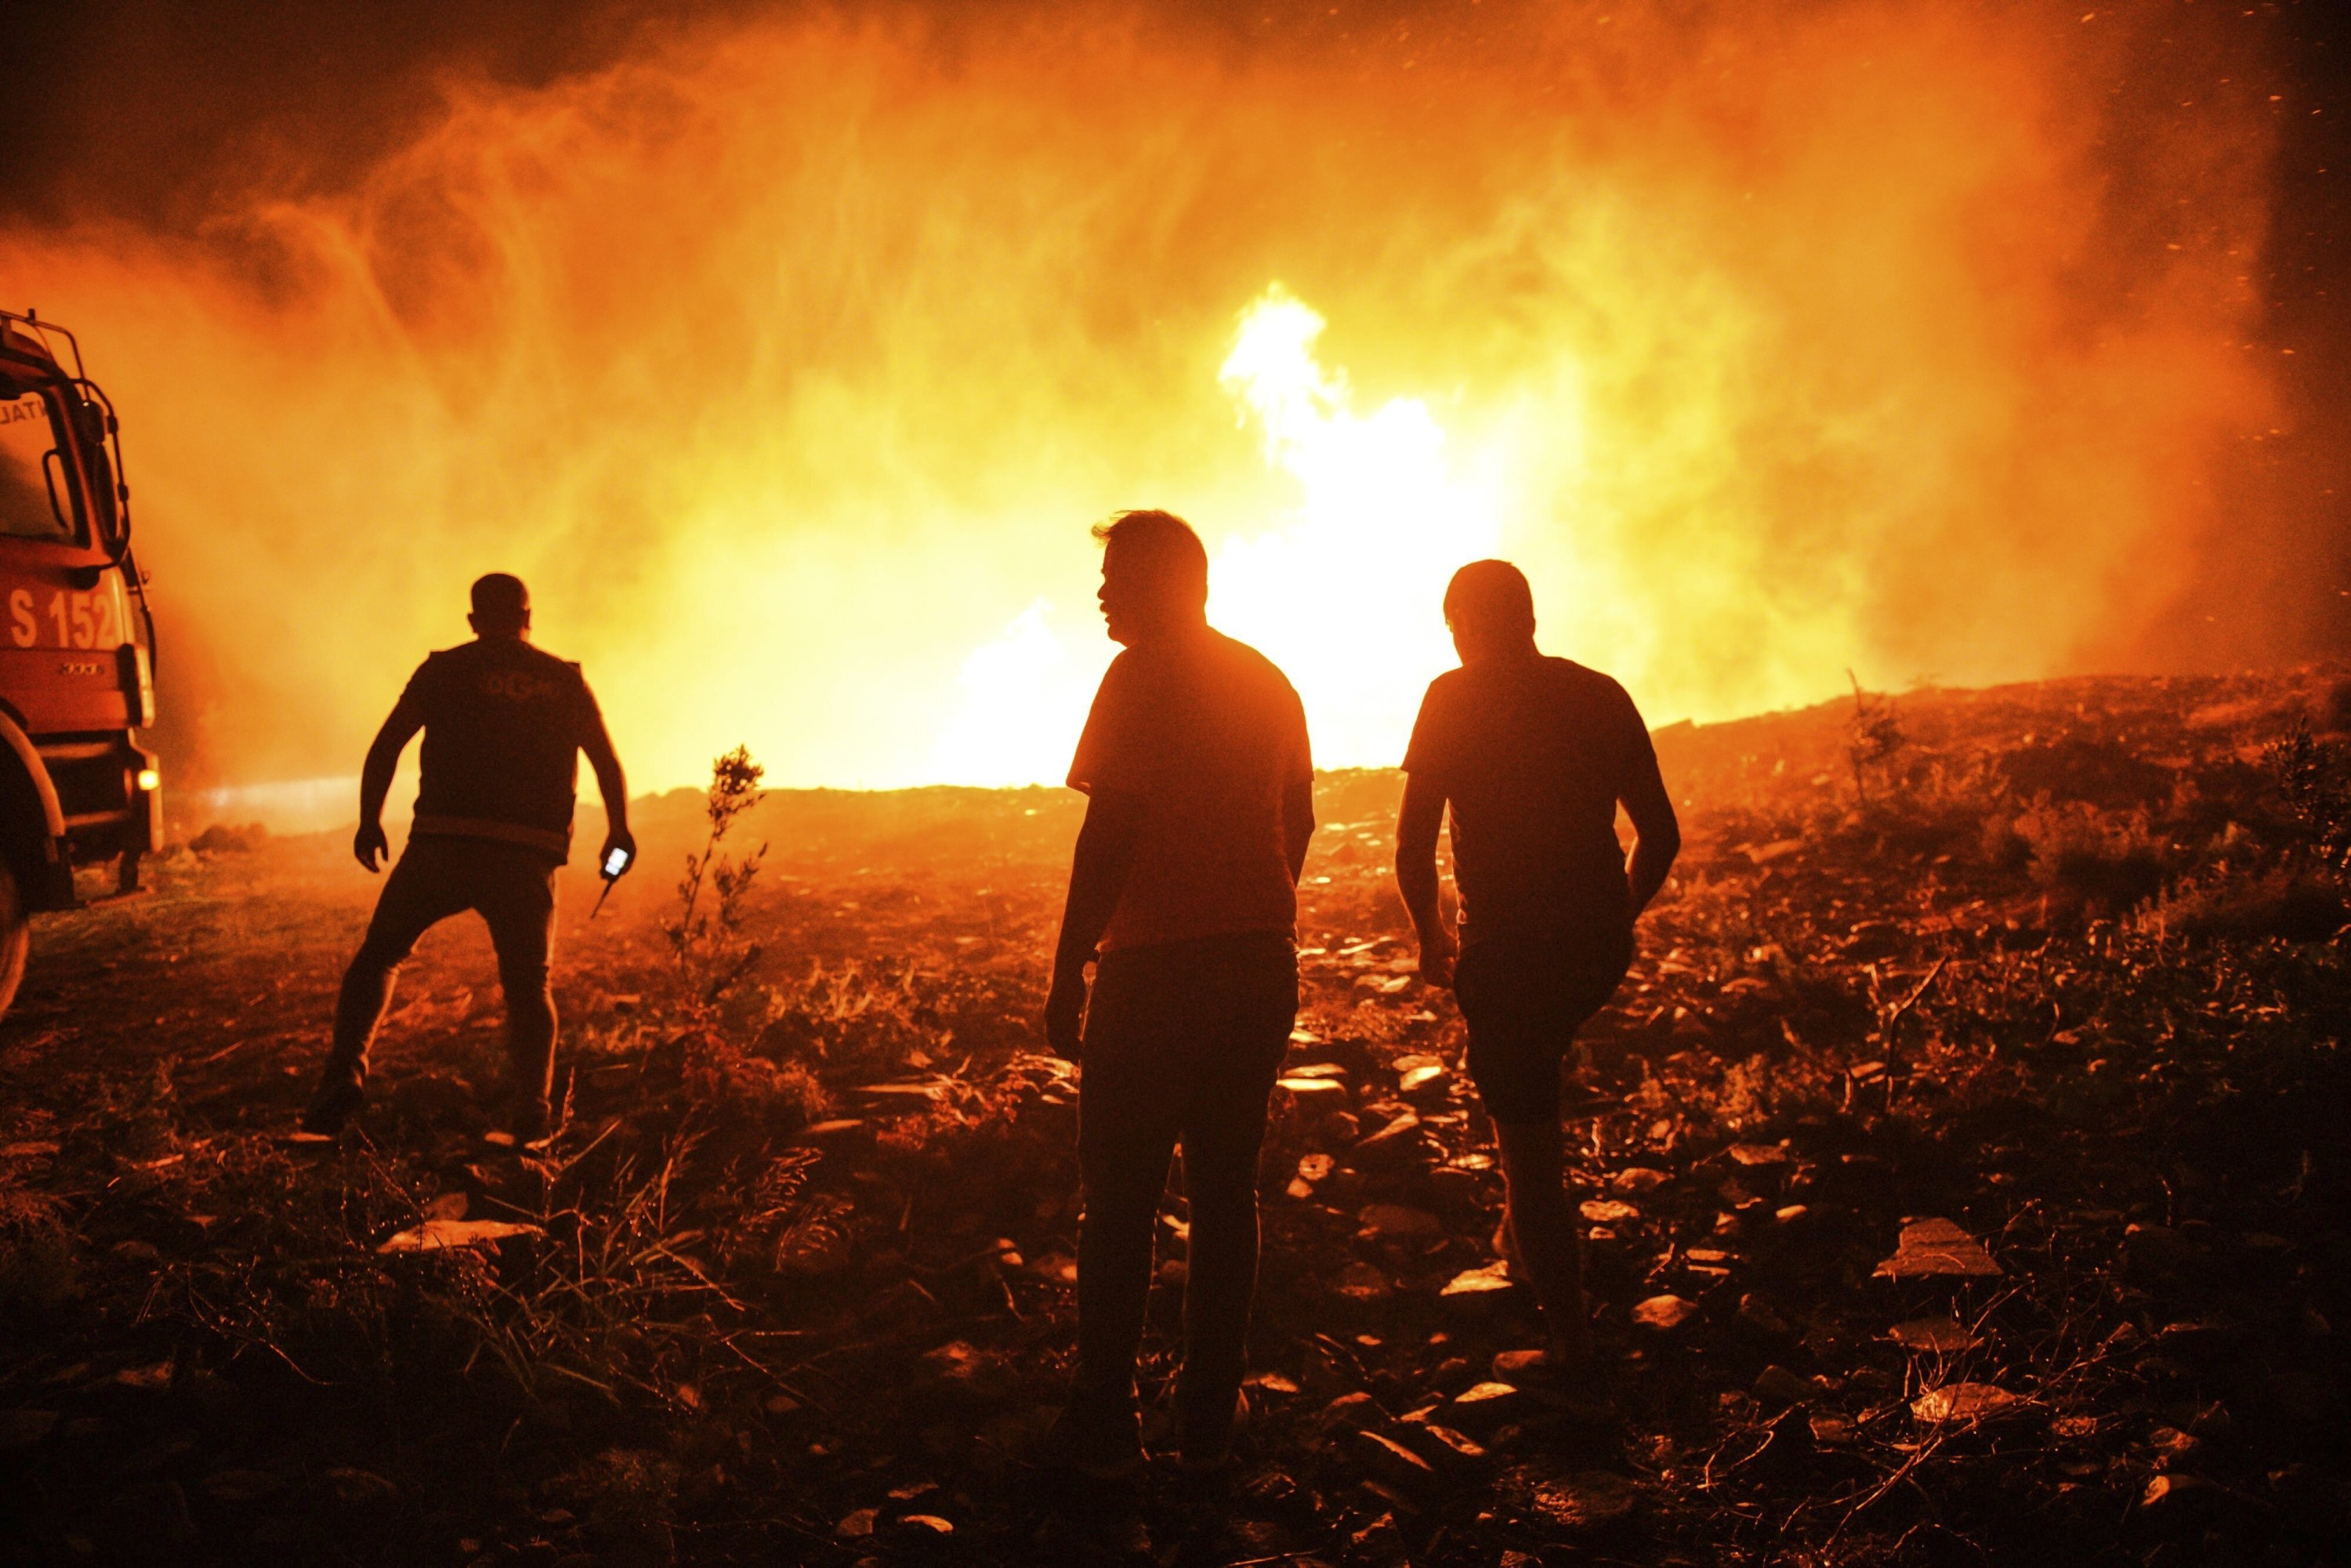 Firefighters and locals try to control a blaze in the village of Kirli near the town of Manavgat, Antalya, southern Turkey, July 30, 2021. (AP PHOTO)